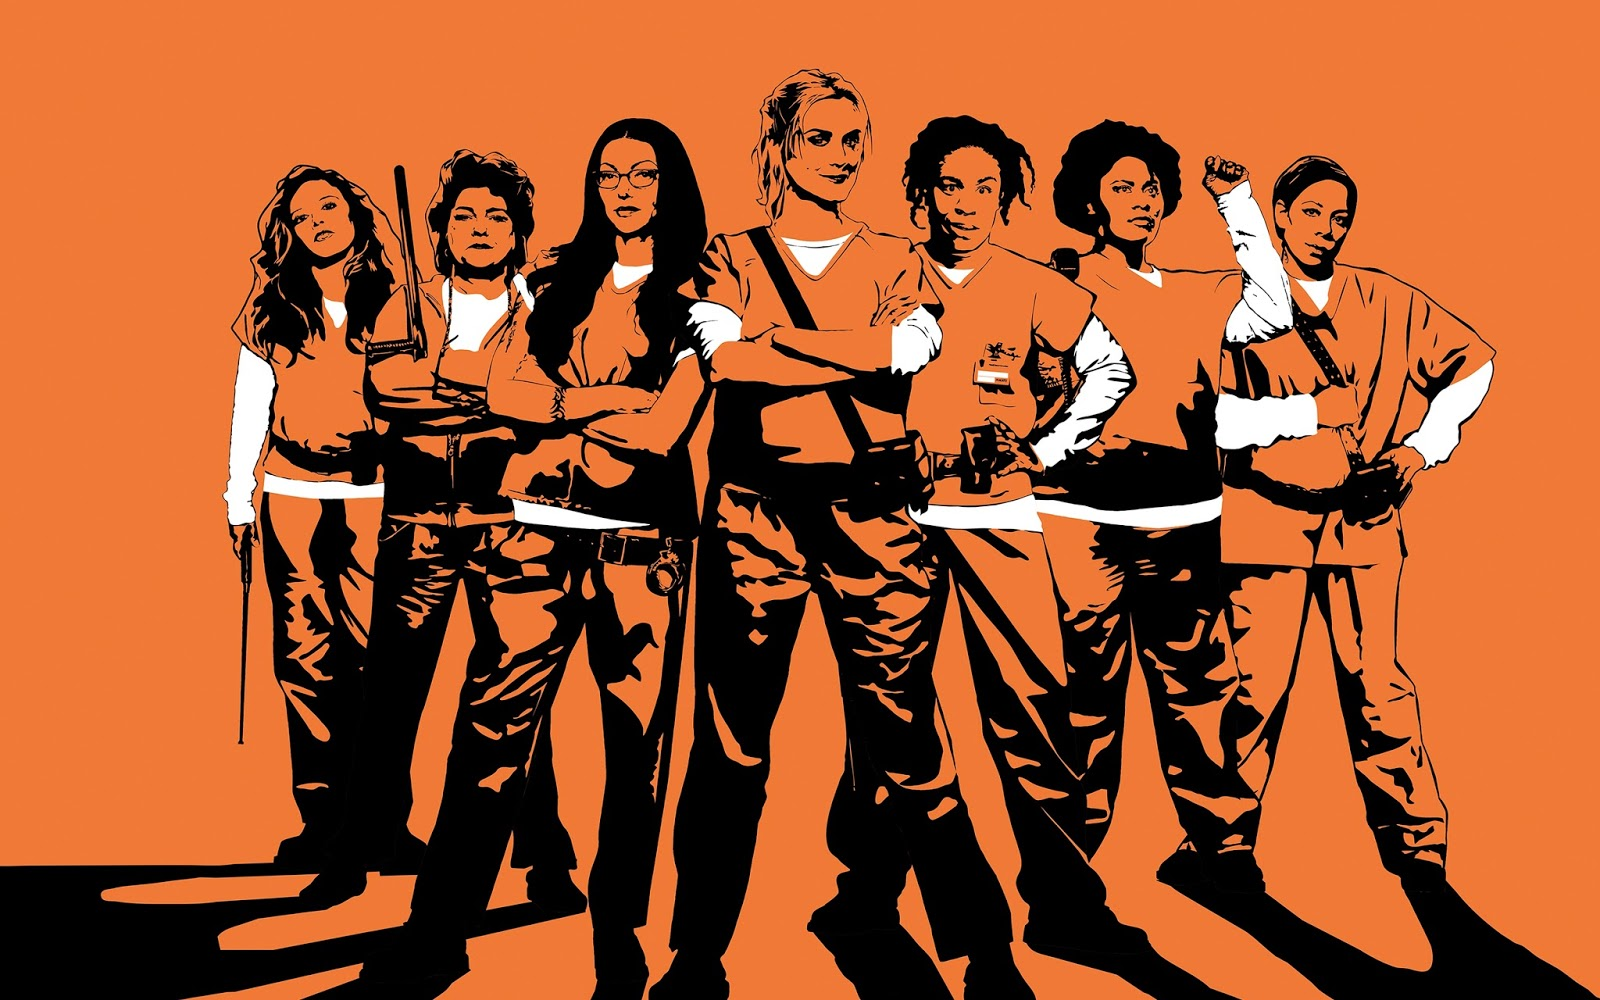 'Orange is the New Black': Quinta temporada